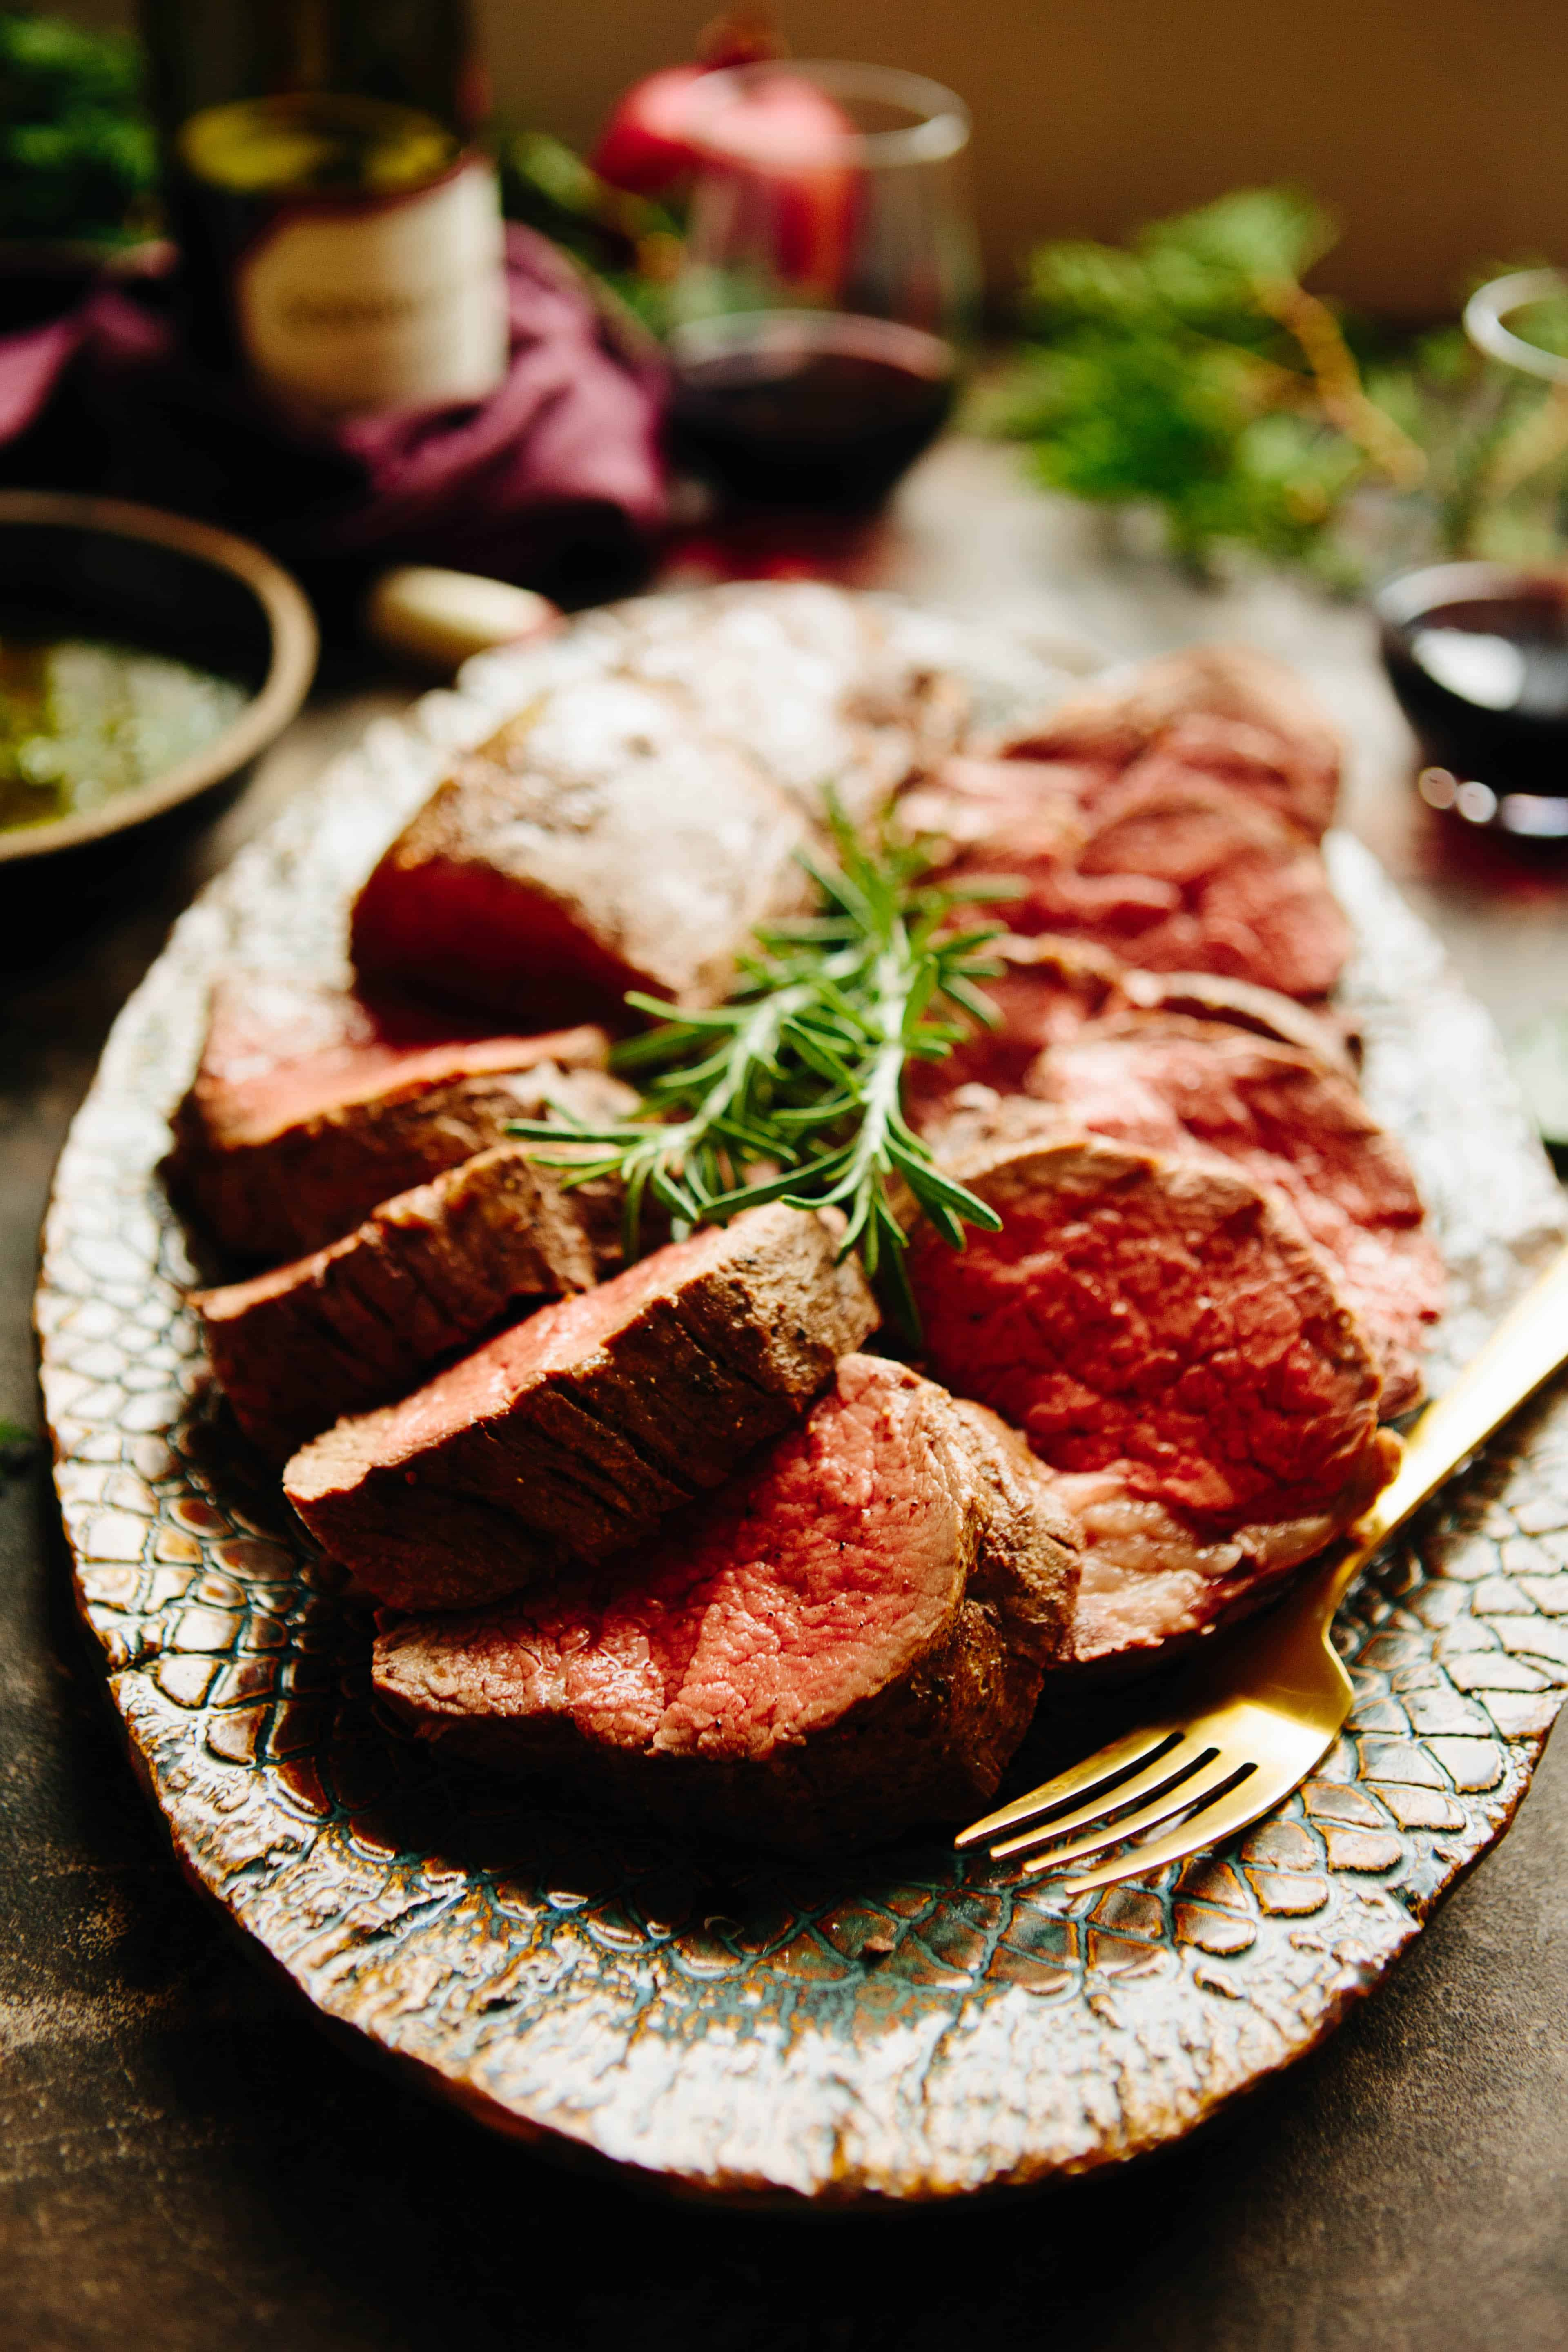 Sliced rare beef tenderloin on serving platter with rosemary garnish and gold fork